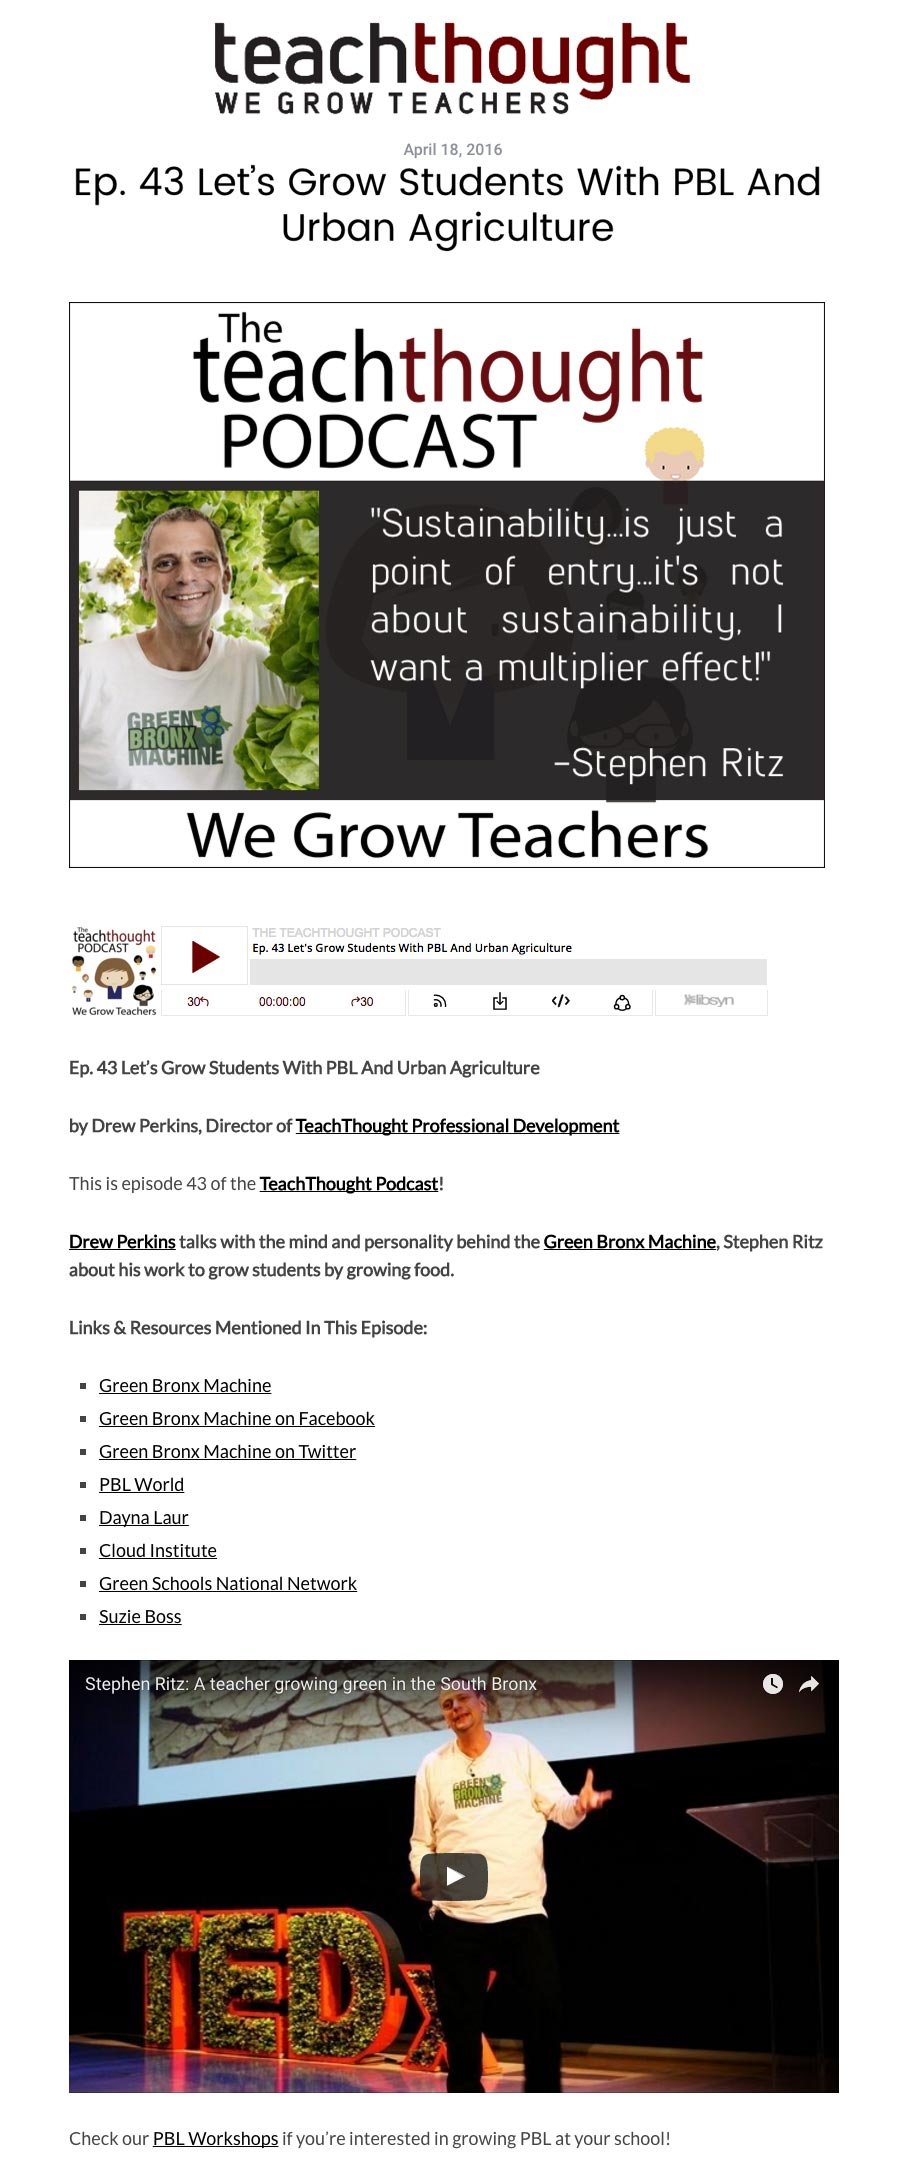 Teach Thought - Let's Grow Students With PBL And Urban Agriculture